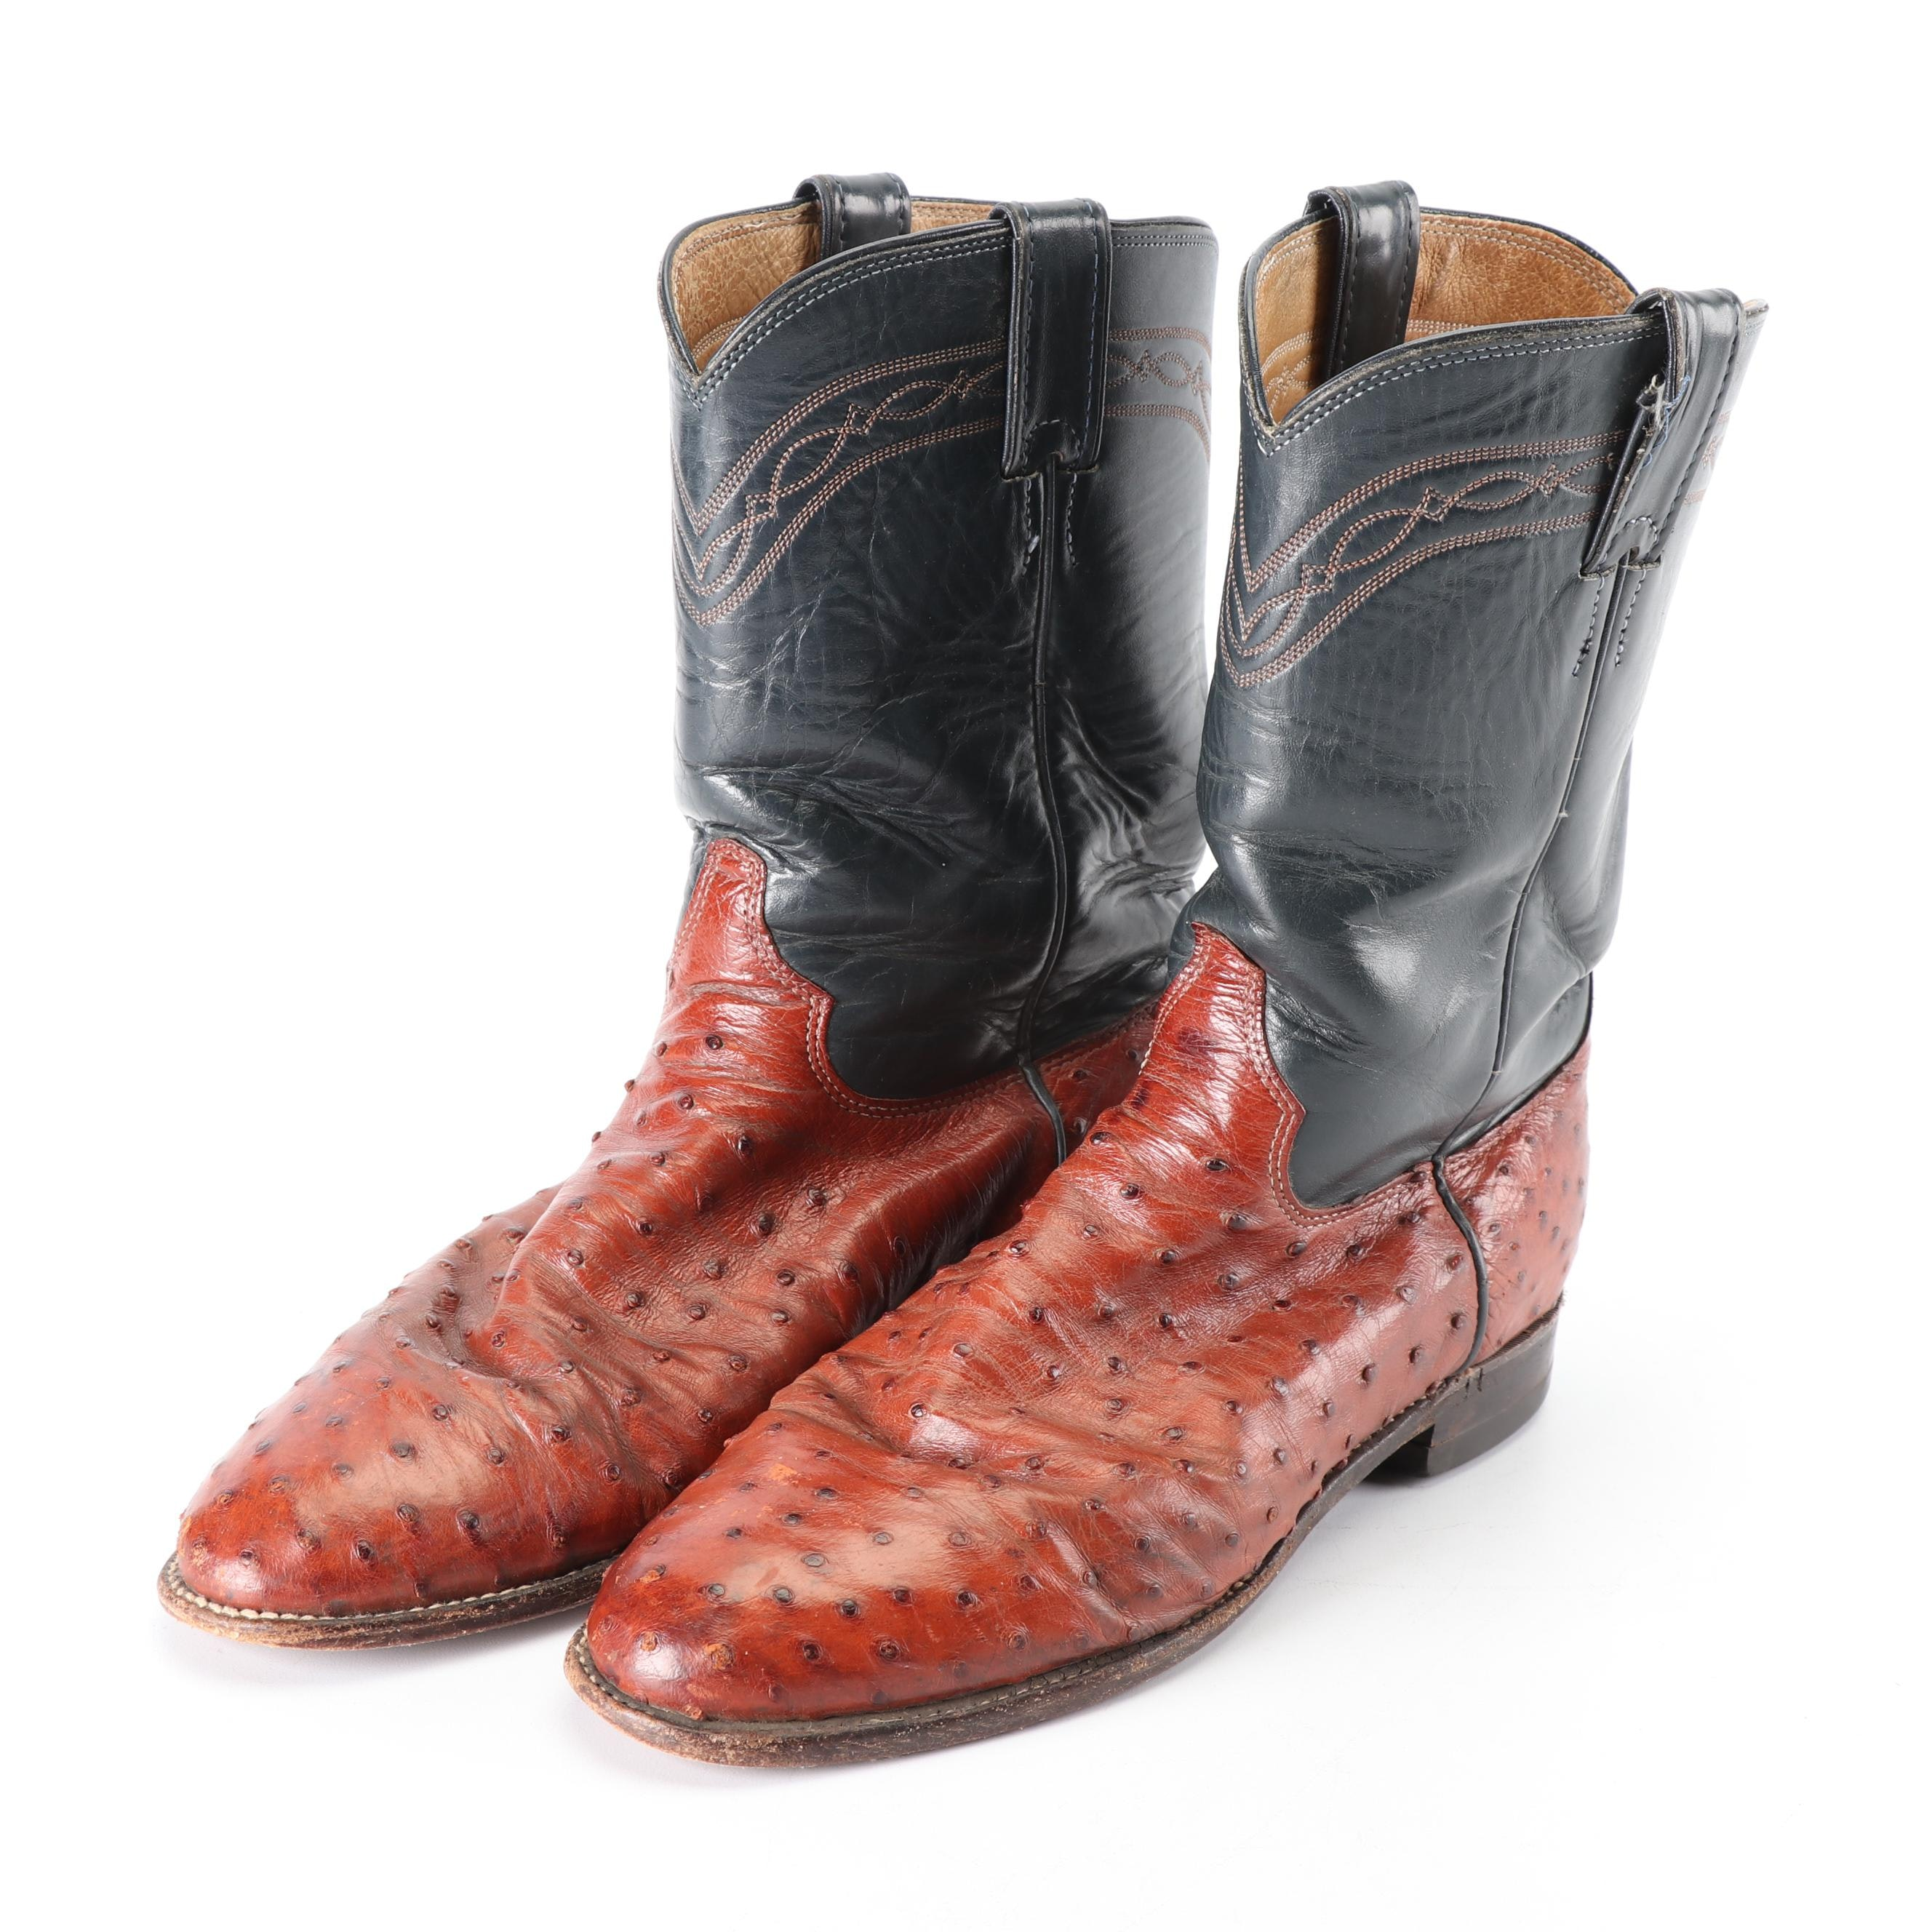 Men's Vintage Justin Leather and Ostrich Skin Cowboy Boots